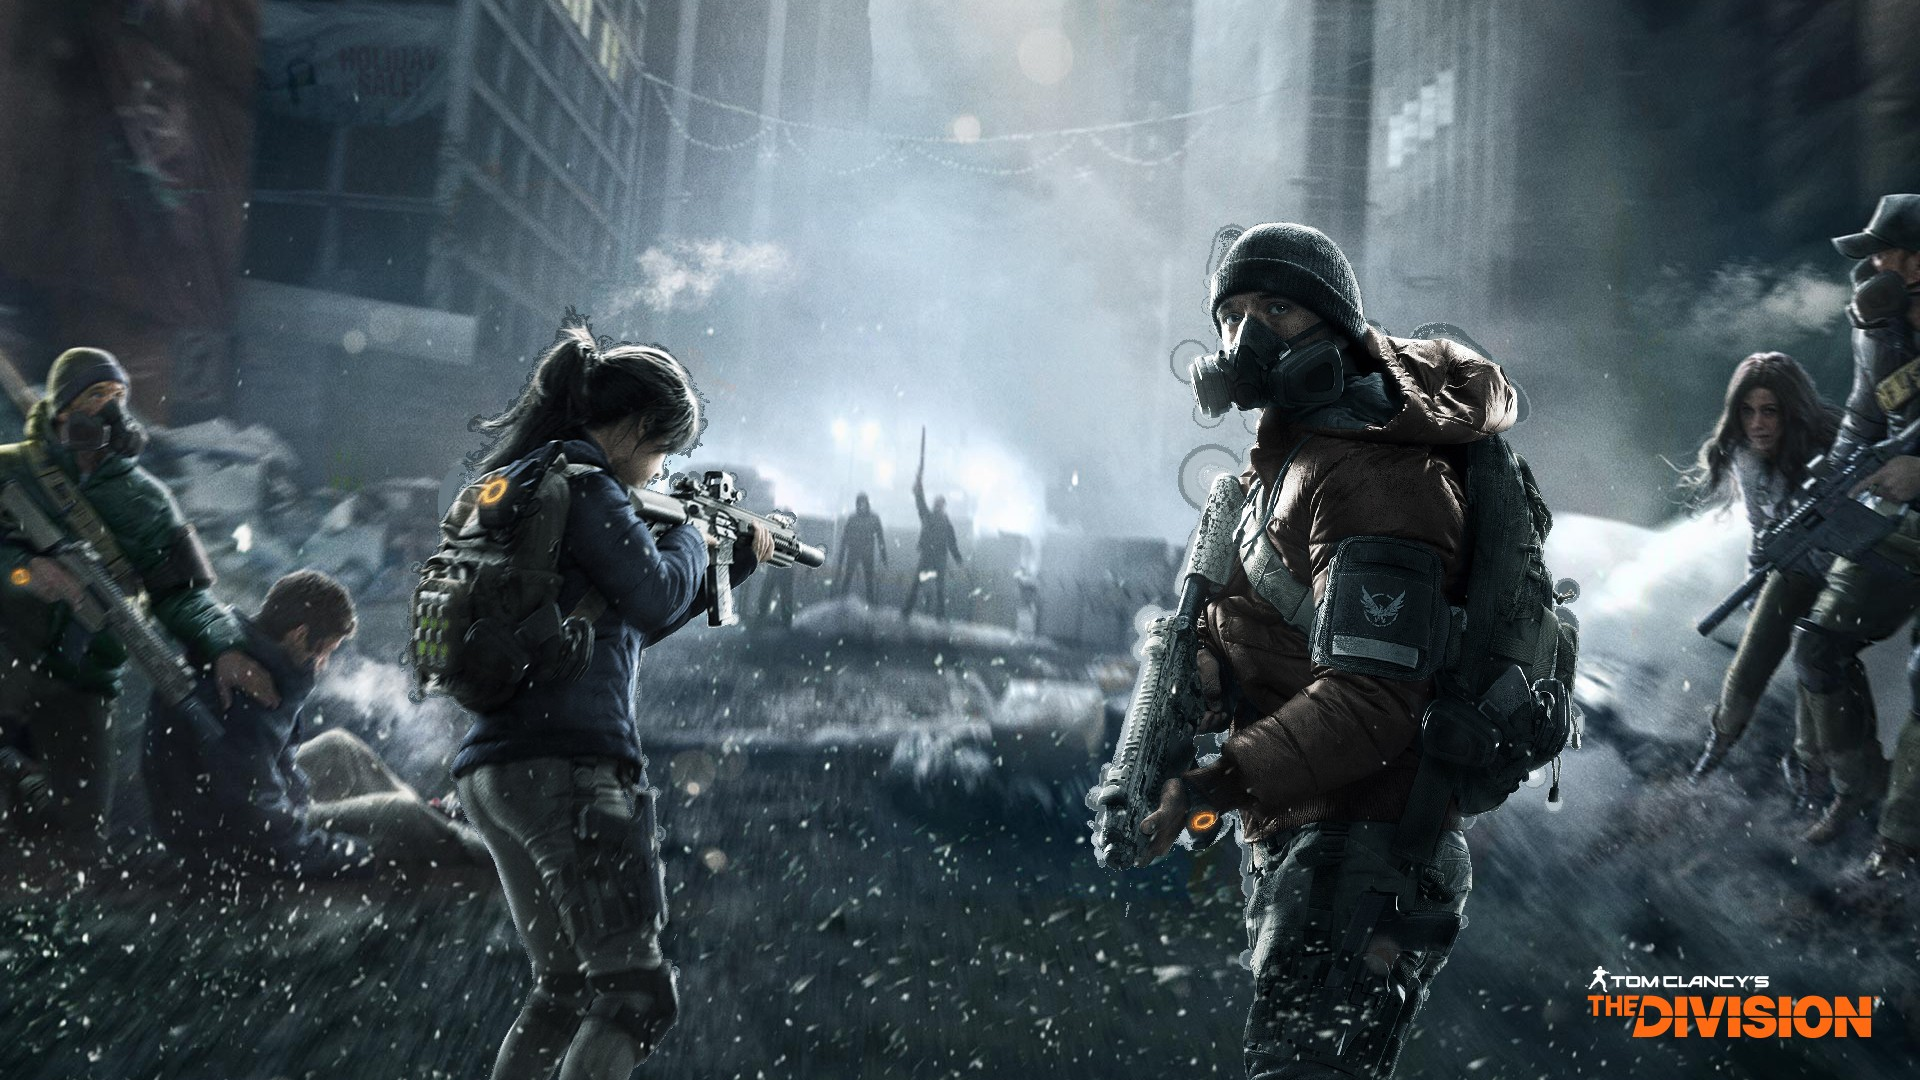 """The Division"" Suffering Server Issues - Starting to Get"